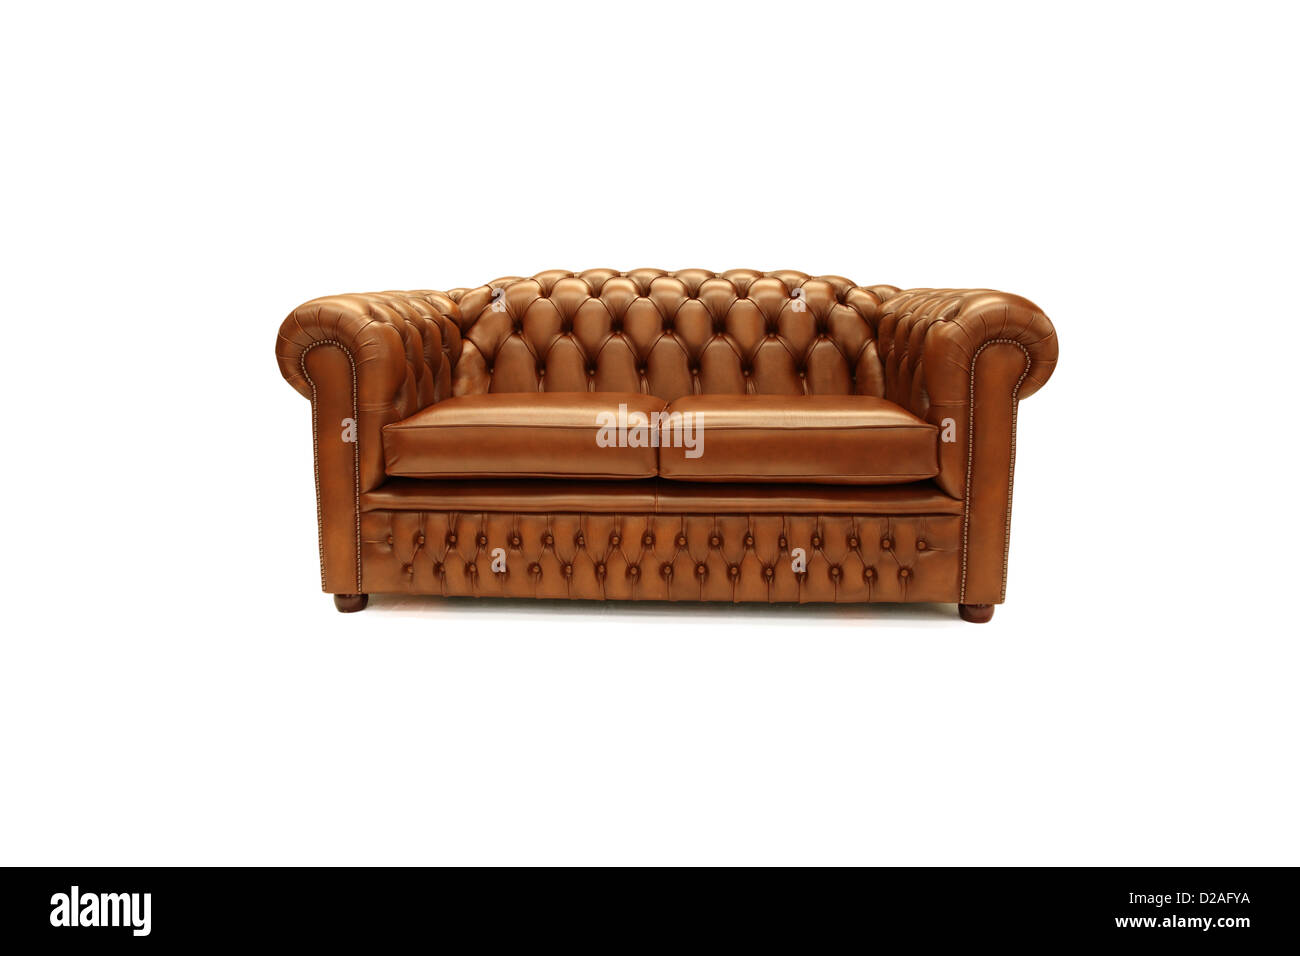 Chesterfield Sofa Stock Photos Chesterfield Sofa Stock Images Alamy